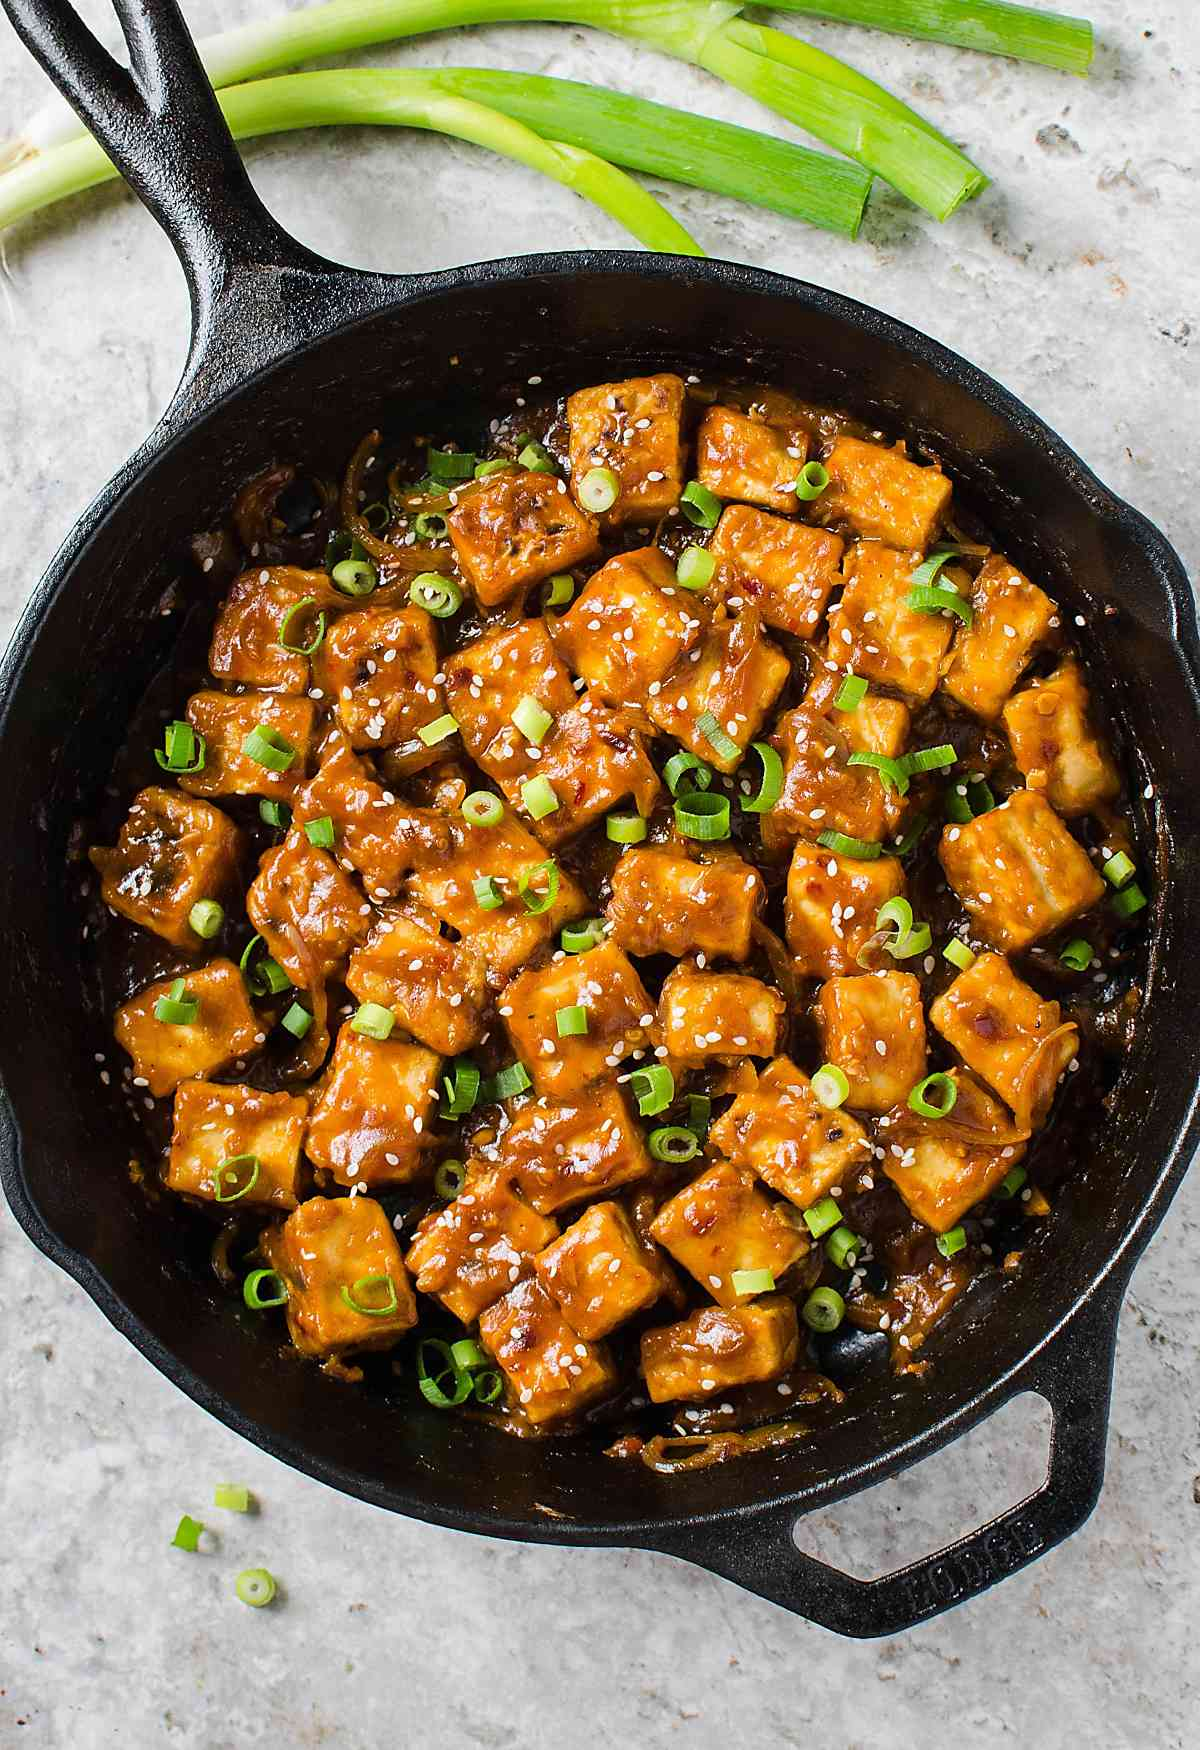 30 min healthy asian chili garlic tofu stir fry one pan meatless extremely flavorful asian chili garlic tofu stir fry in just 30 minutes a forumfinder Images